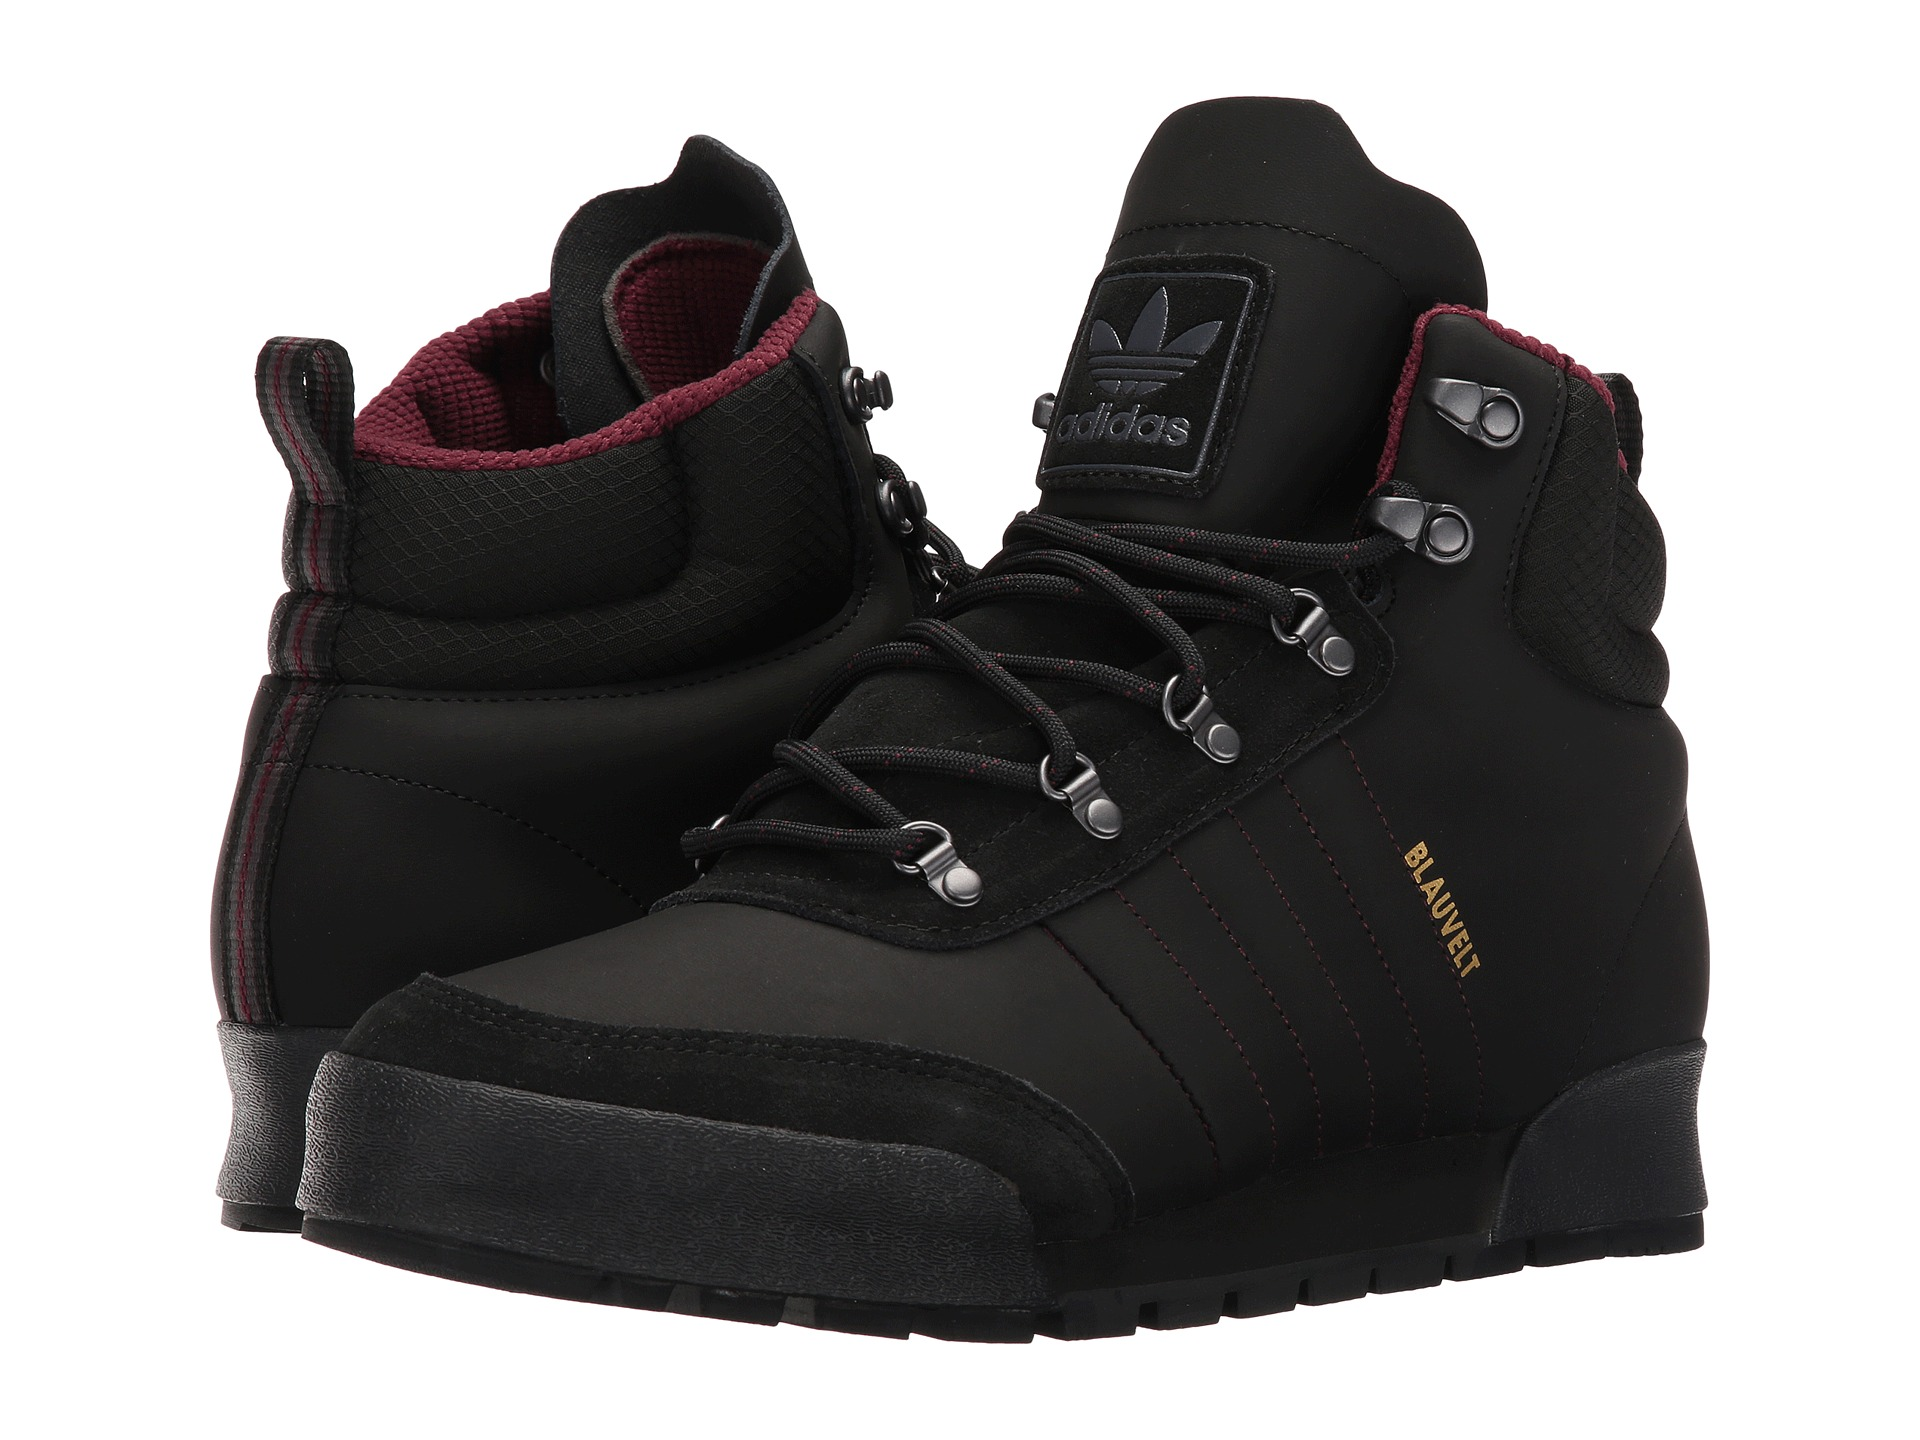 adidas Skateboarding Jake Boot 2.0 at 6pm.com